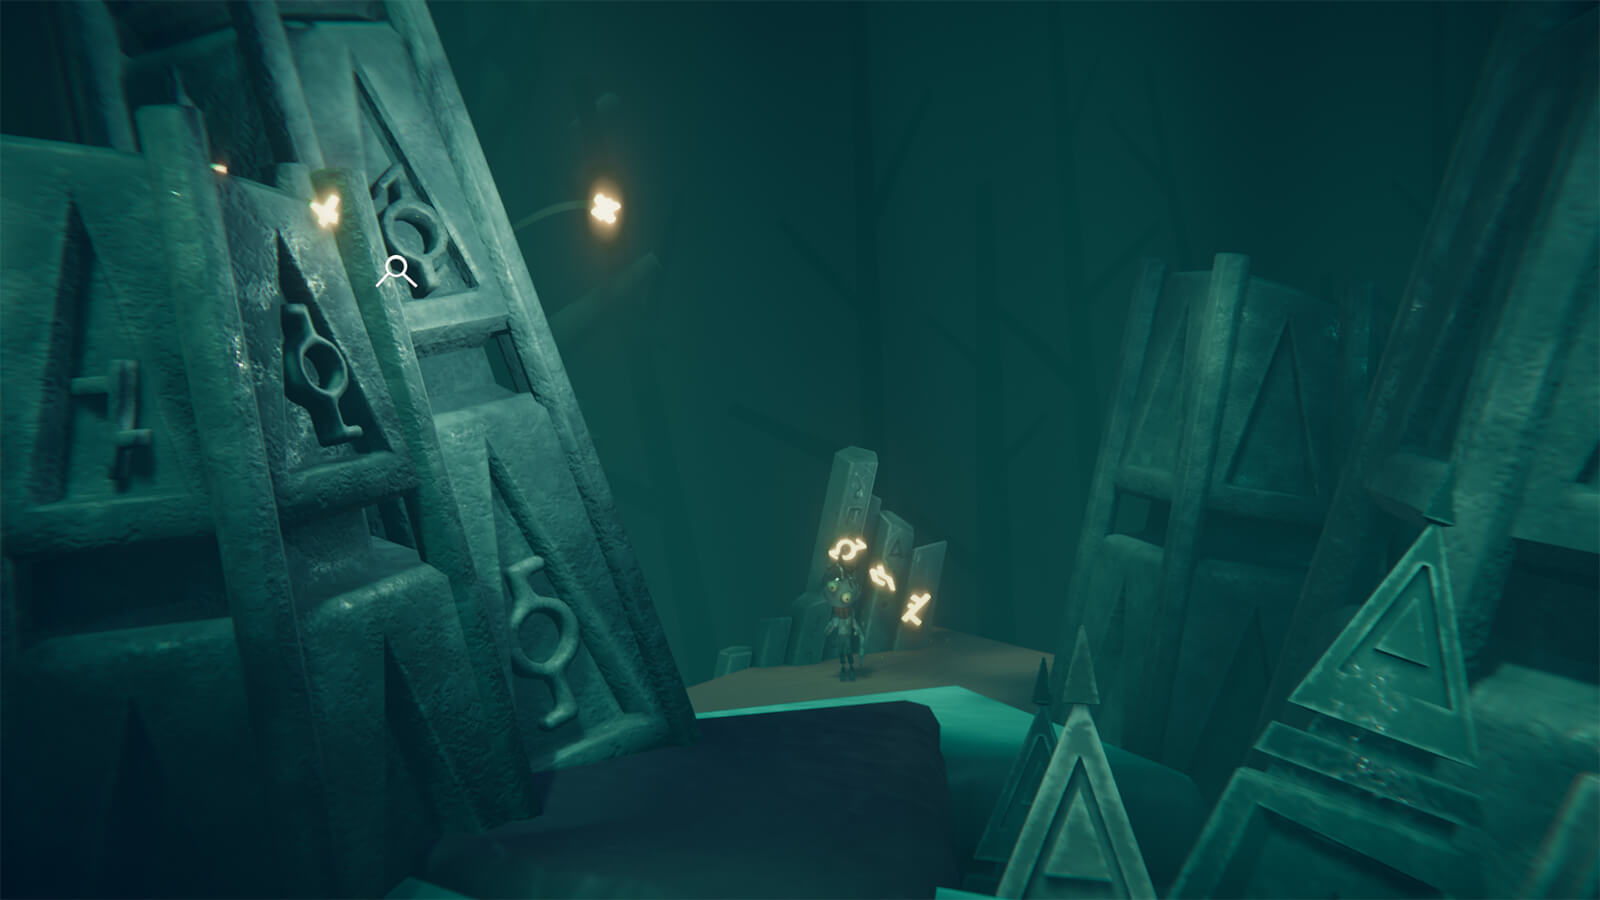 The Pilgrim stands in the background near three glowing floating runes, with giant stone rune slabs in the foreground.